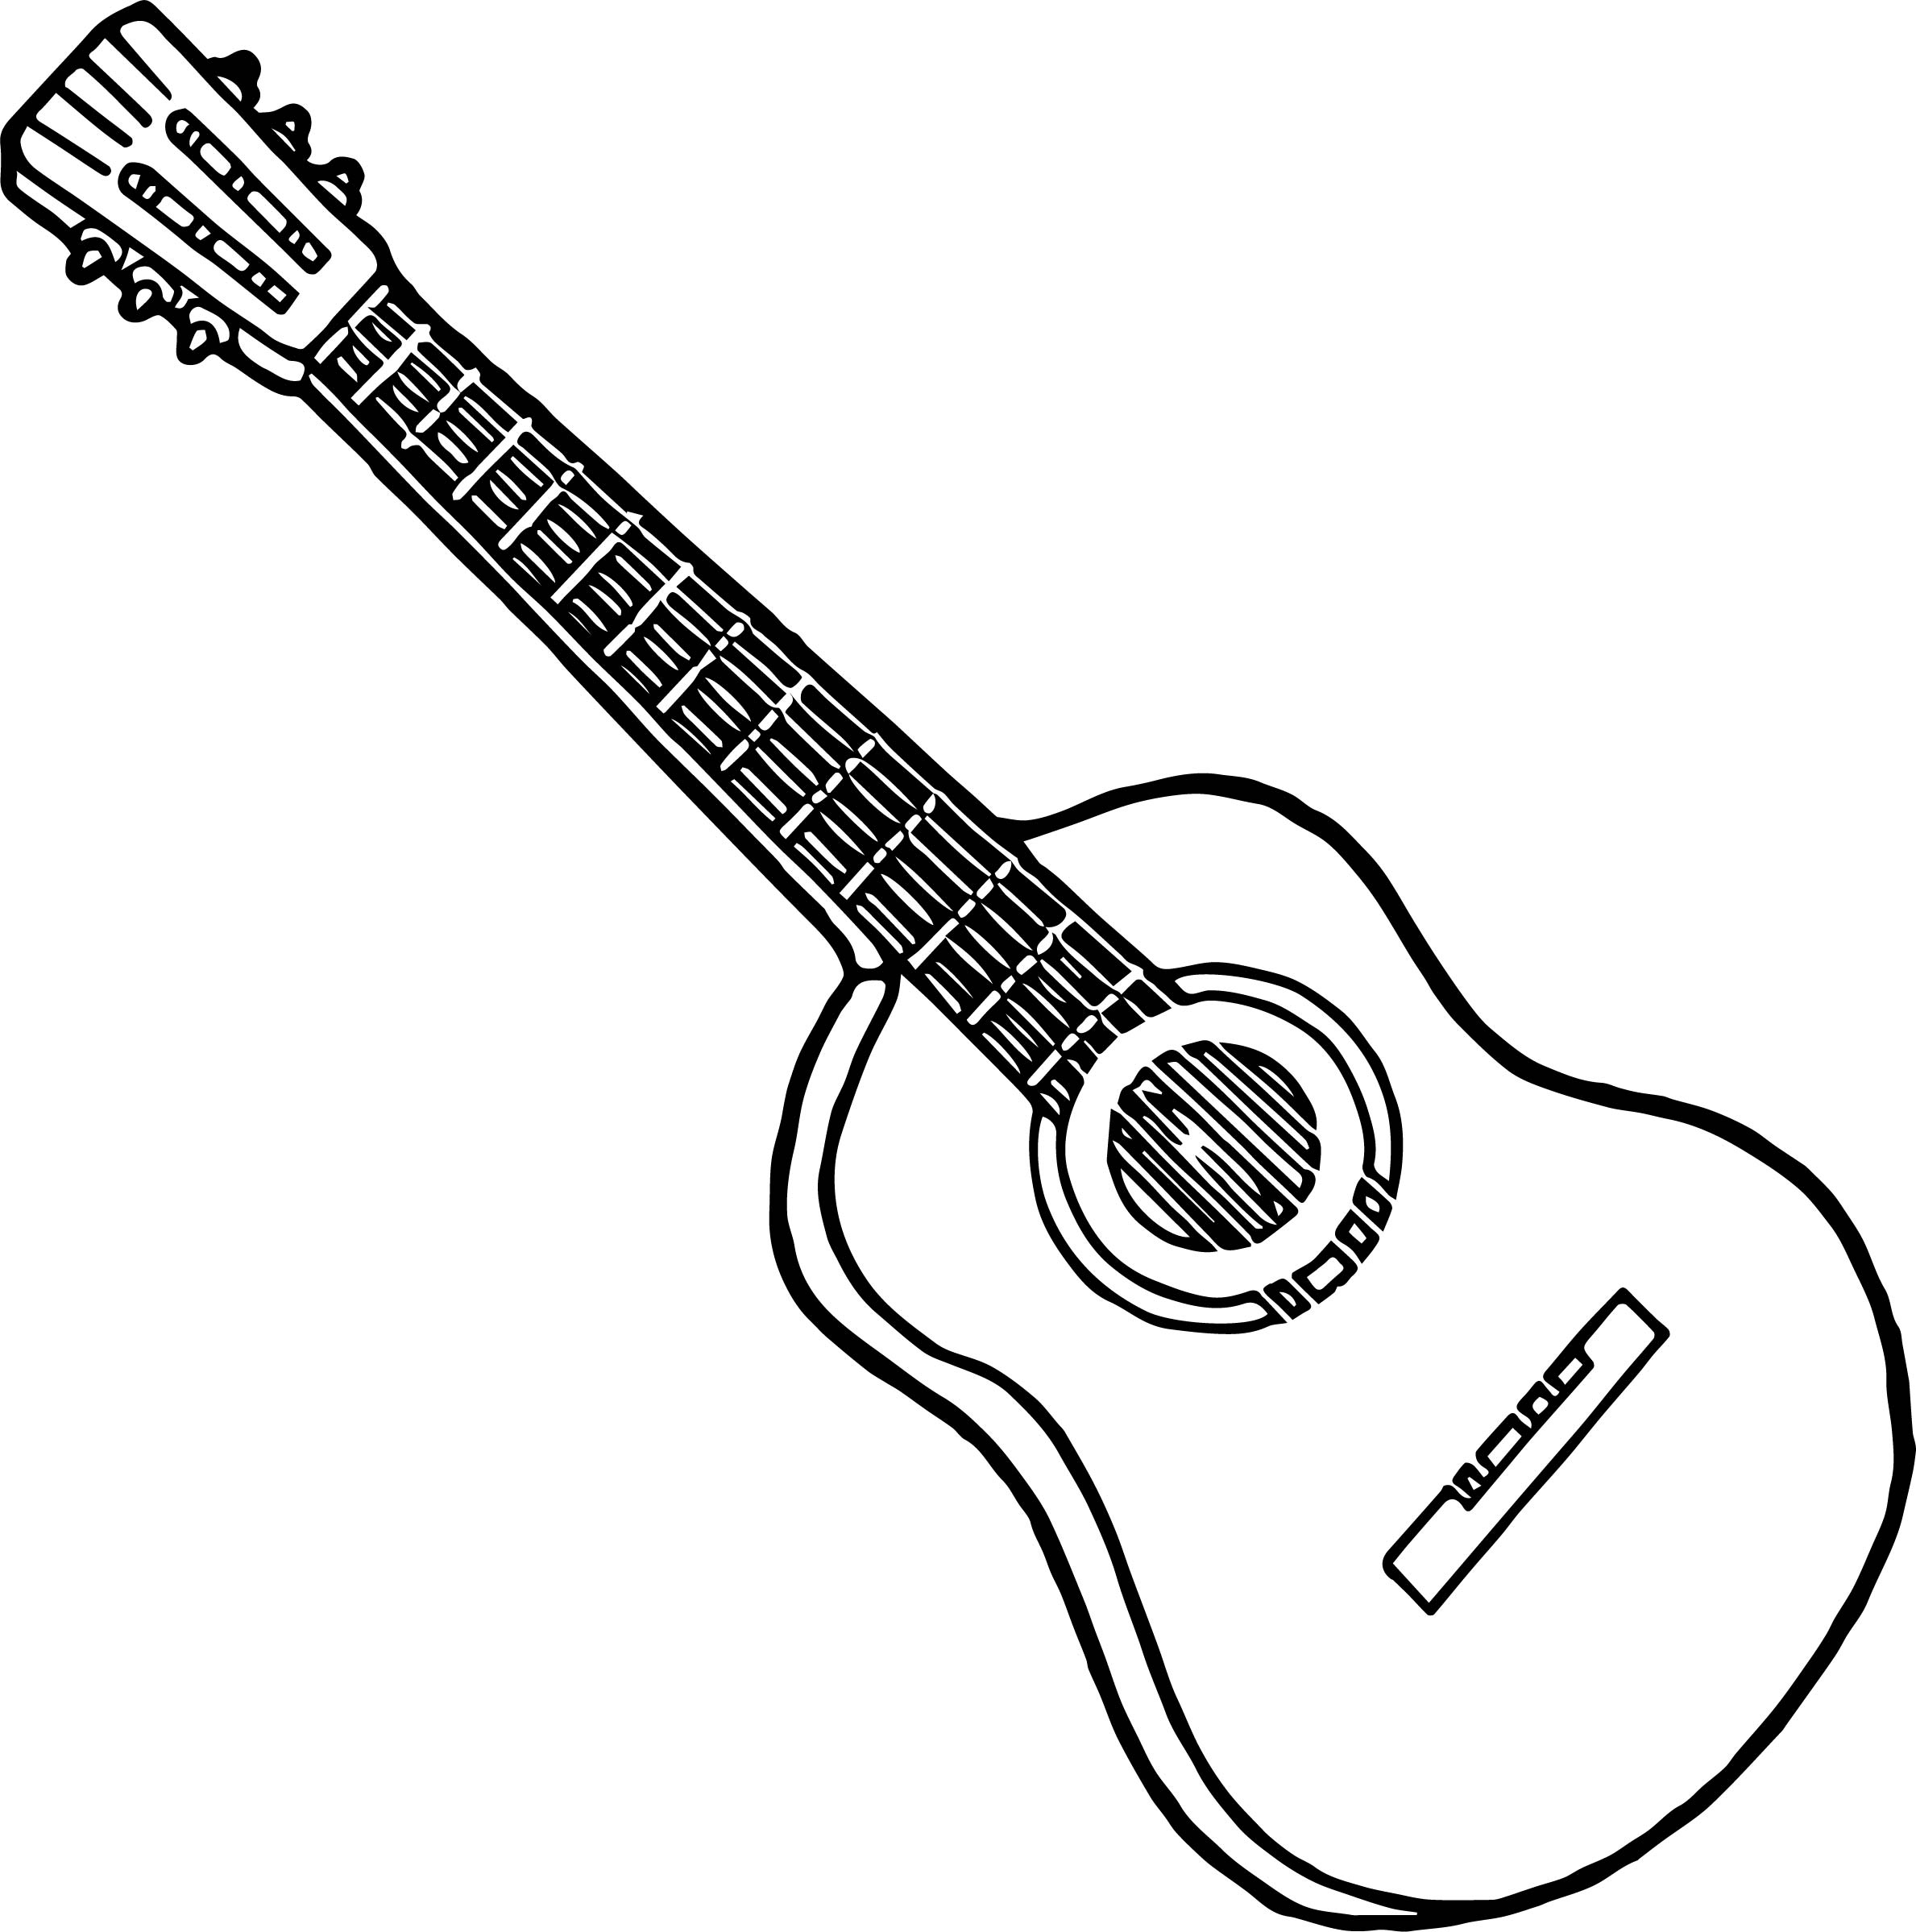 Guitar Drawing Easy at GetDrawings.com | Free for personal use ...